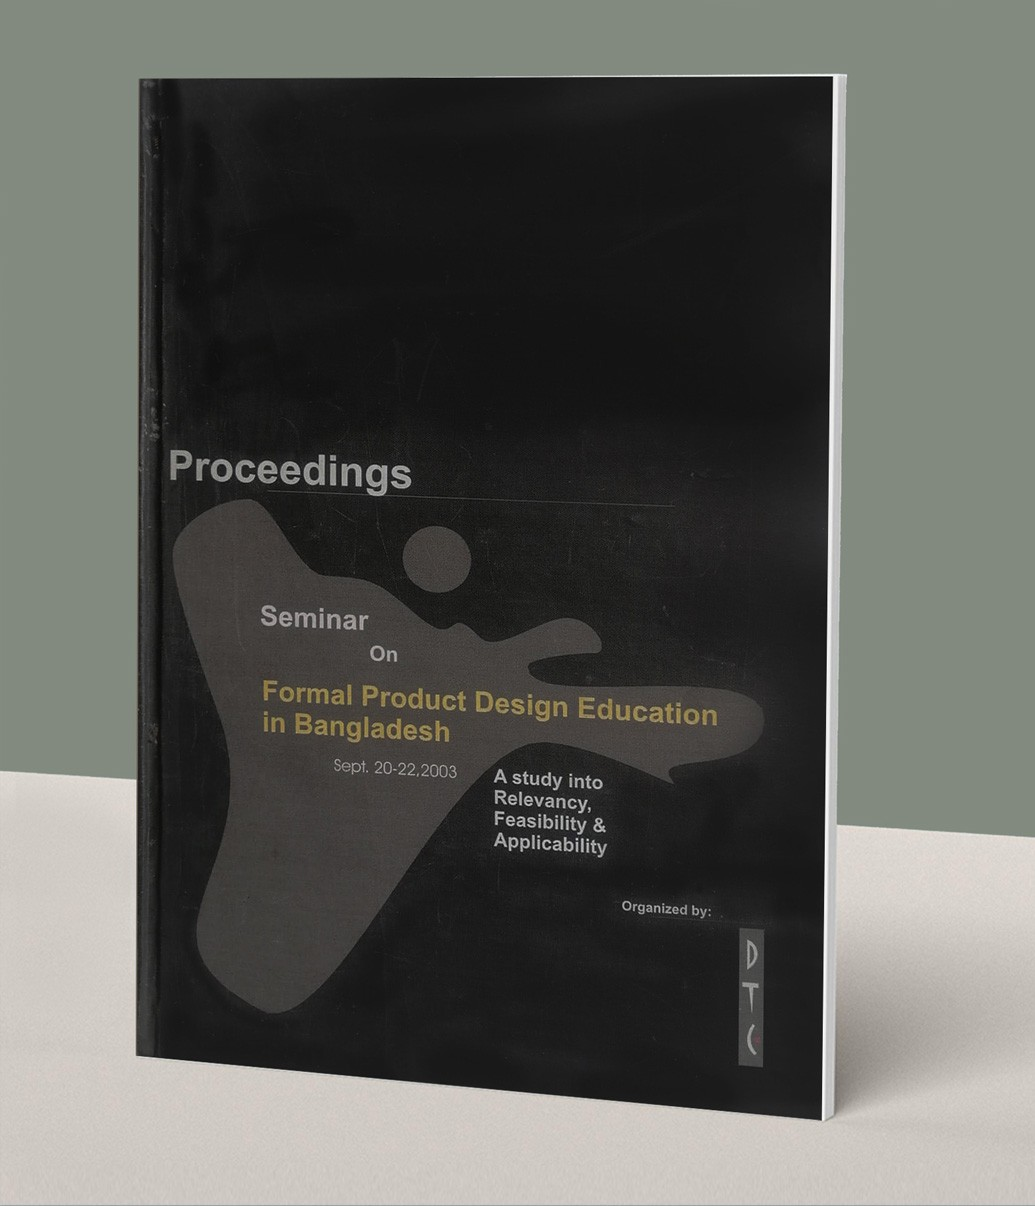 Proceedings of Seminar on Formal Product Design Education in Bangladesh